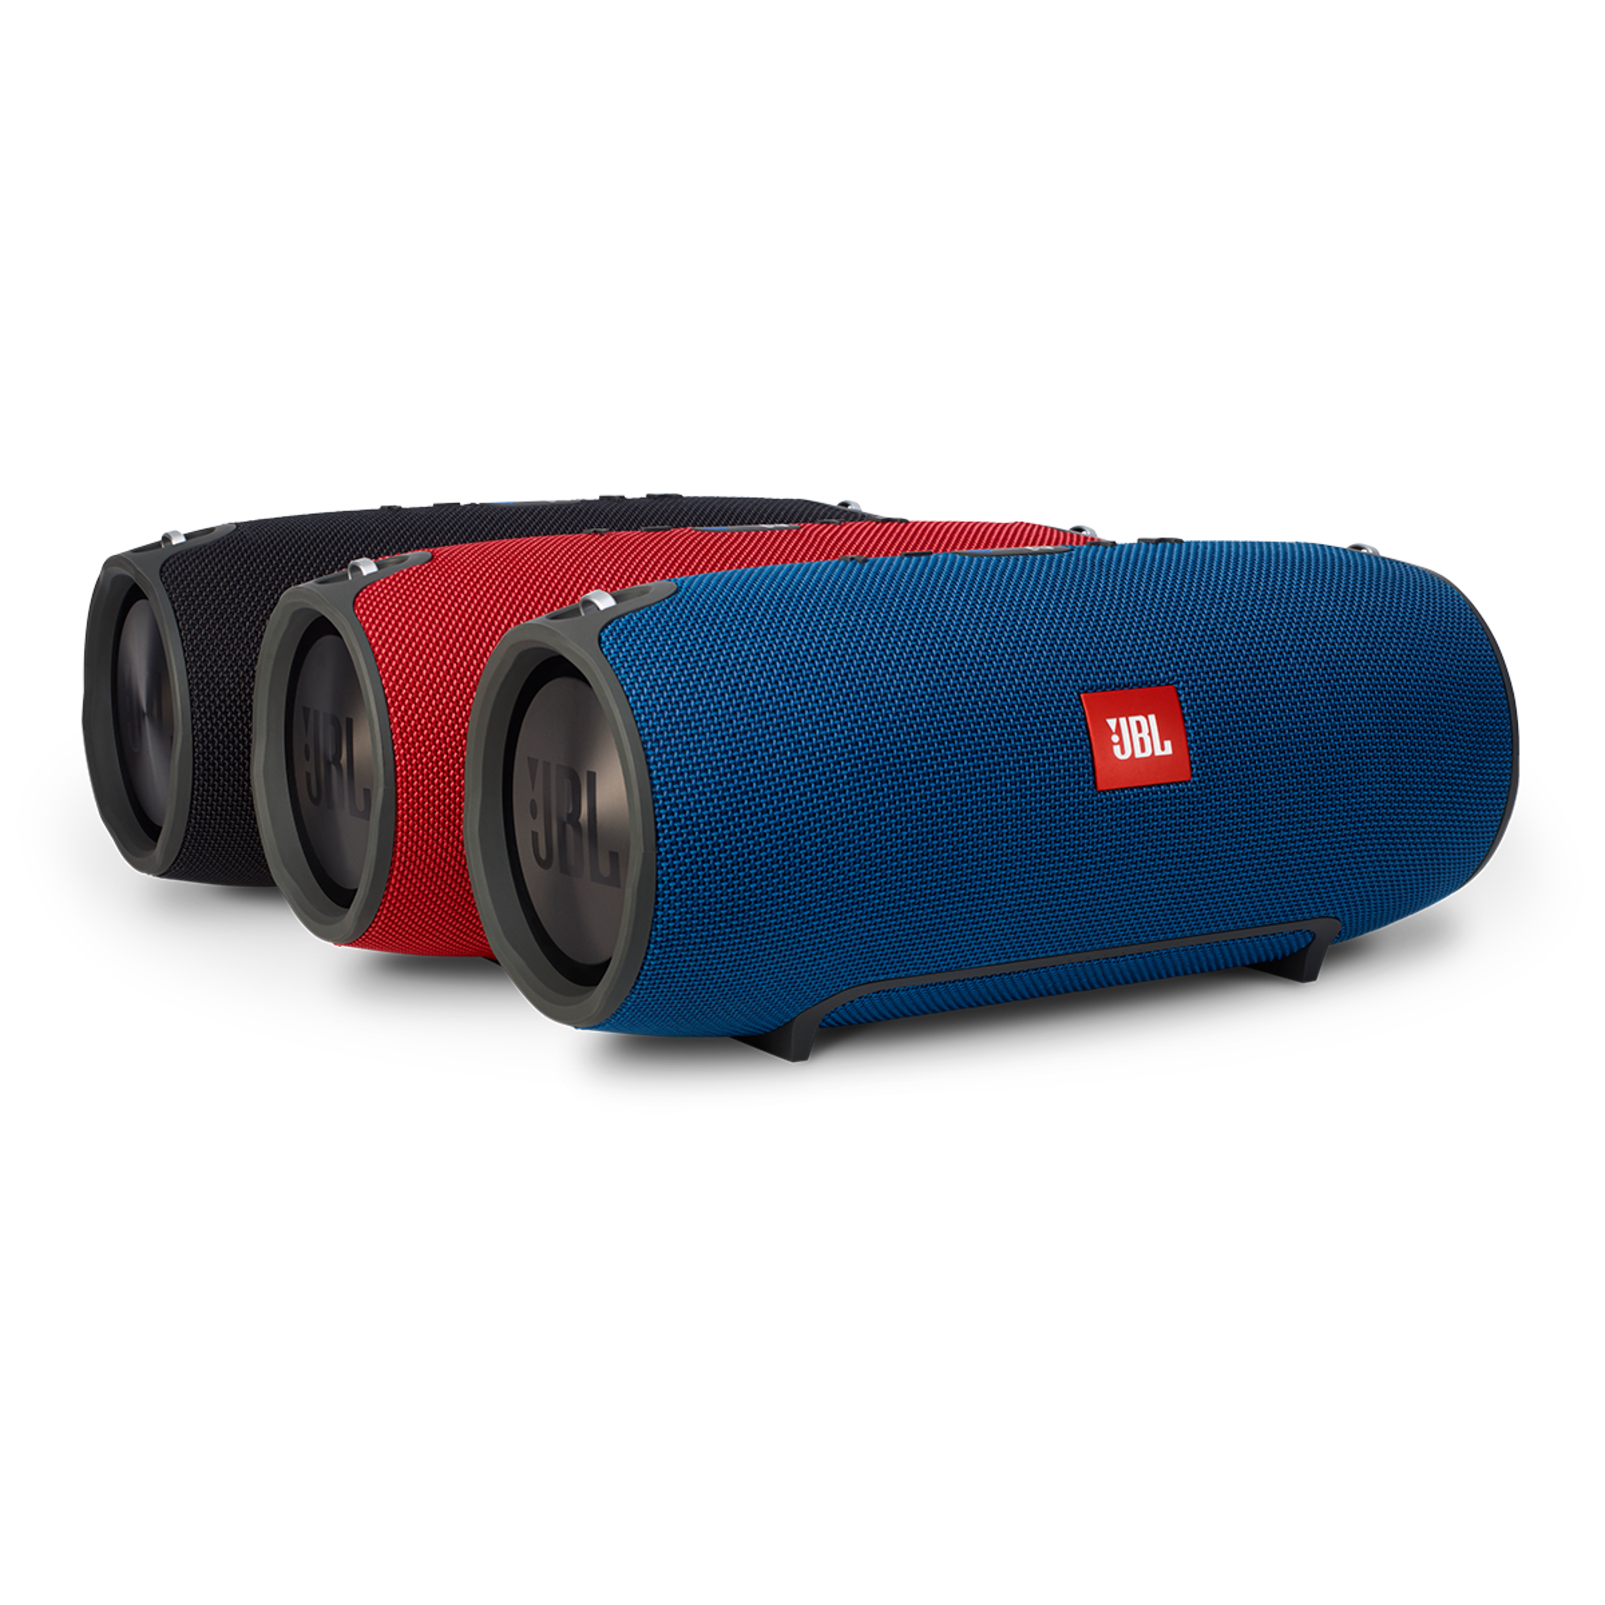 JBL Xtreme - Red - Splashproof portable speaker with ultra-powerful performance - Detailshot 2